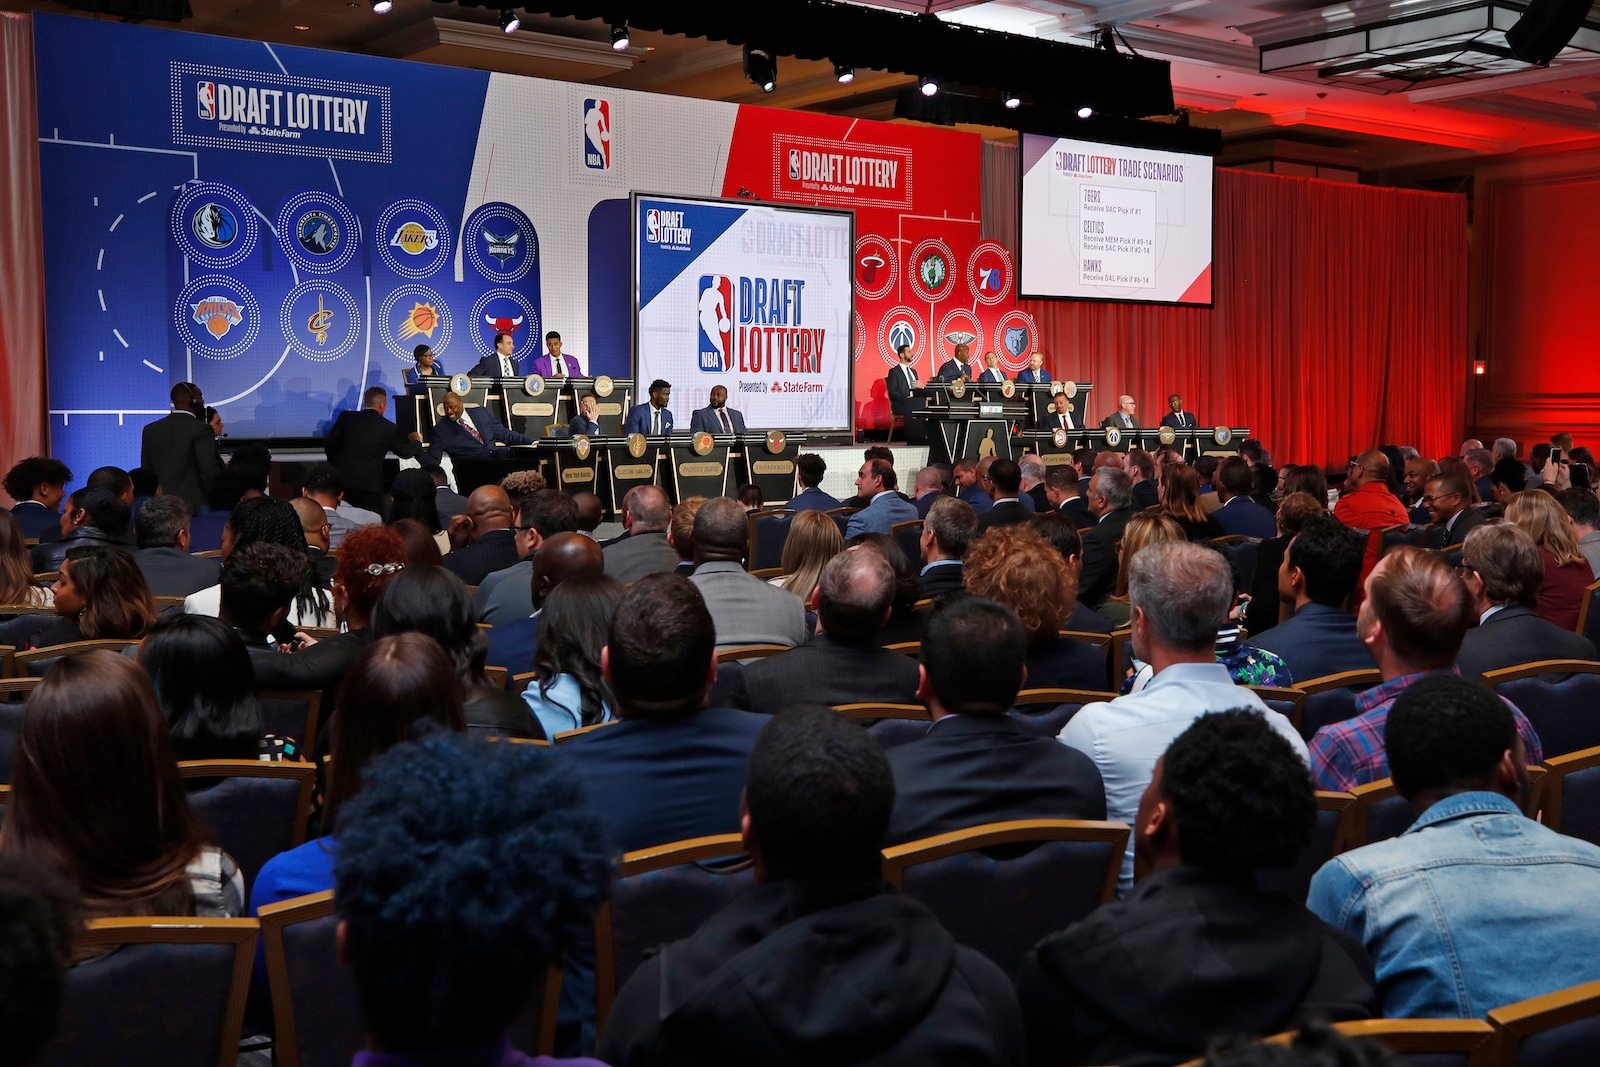 An overall view of the stage at the 2019 NBA Draft Lottery on May 14, 2019 at the Chicago Hilton in Chicago, Illinois.